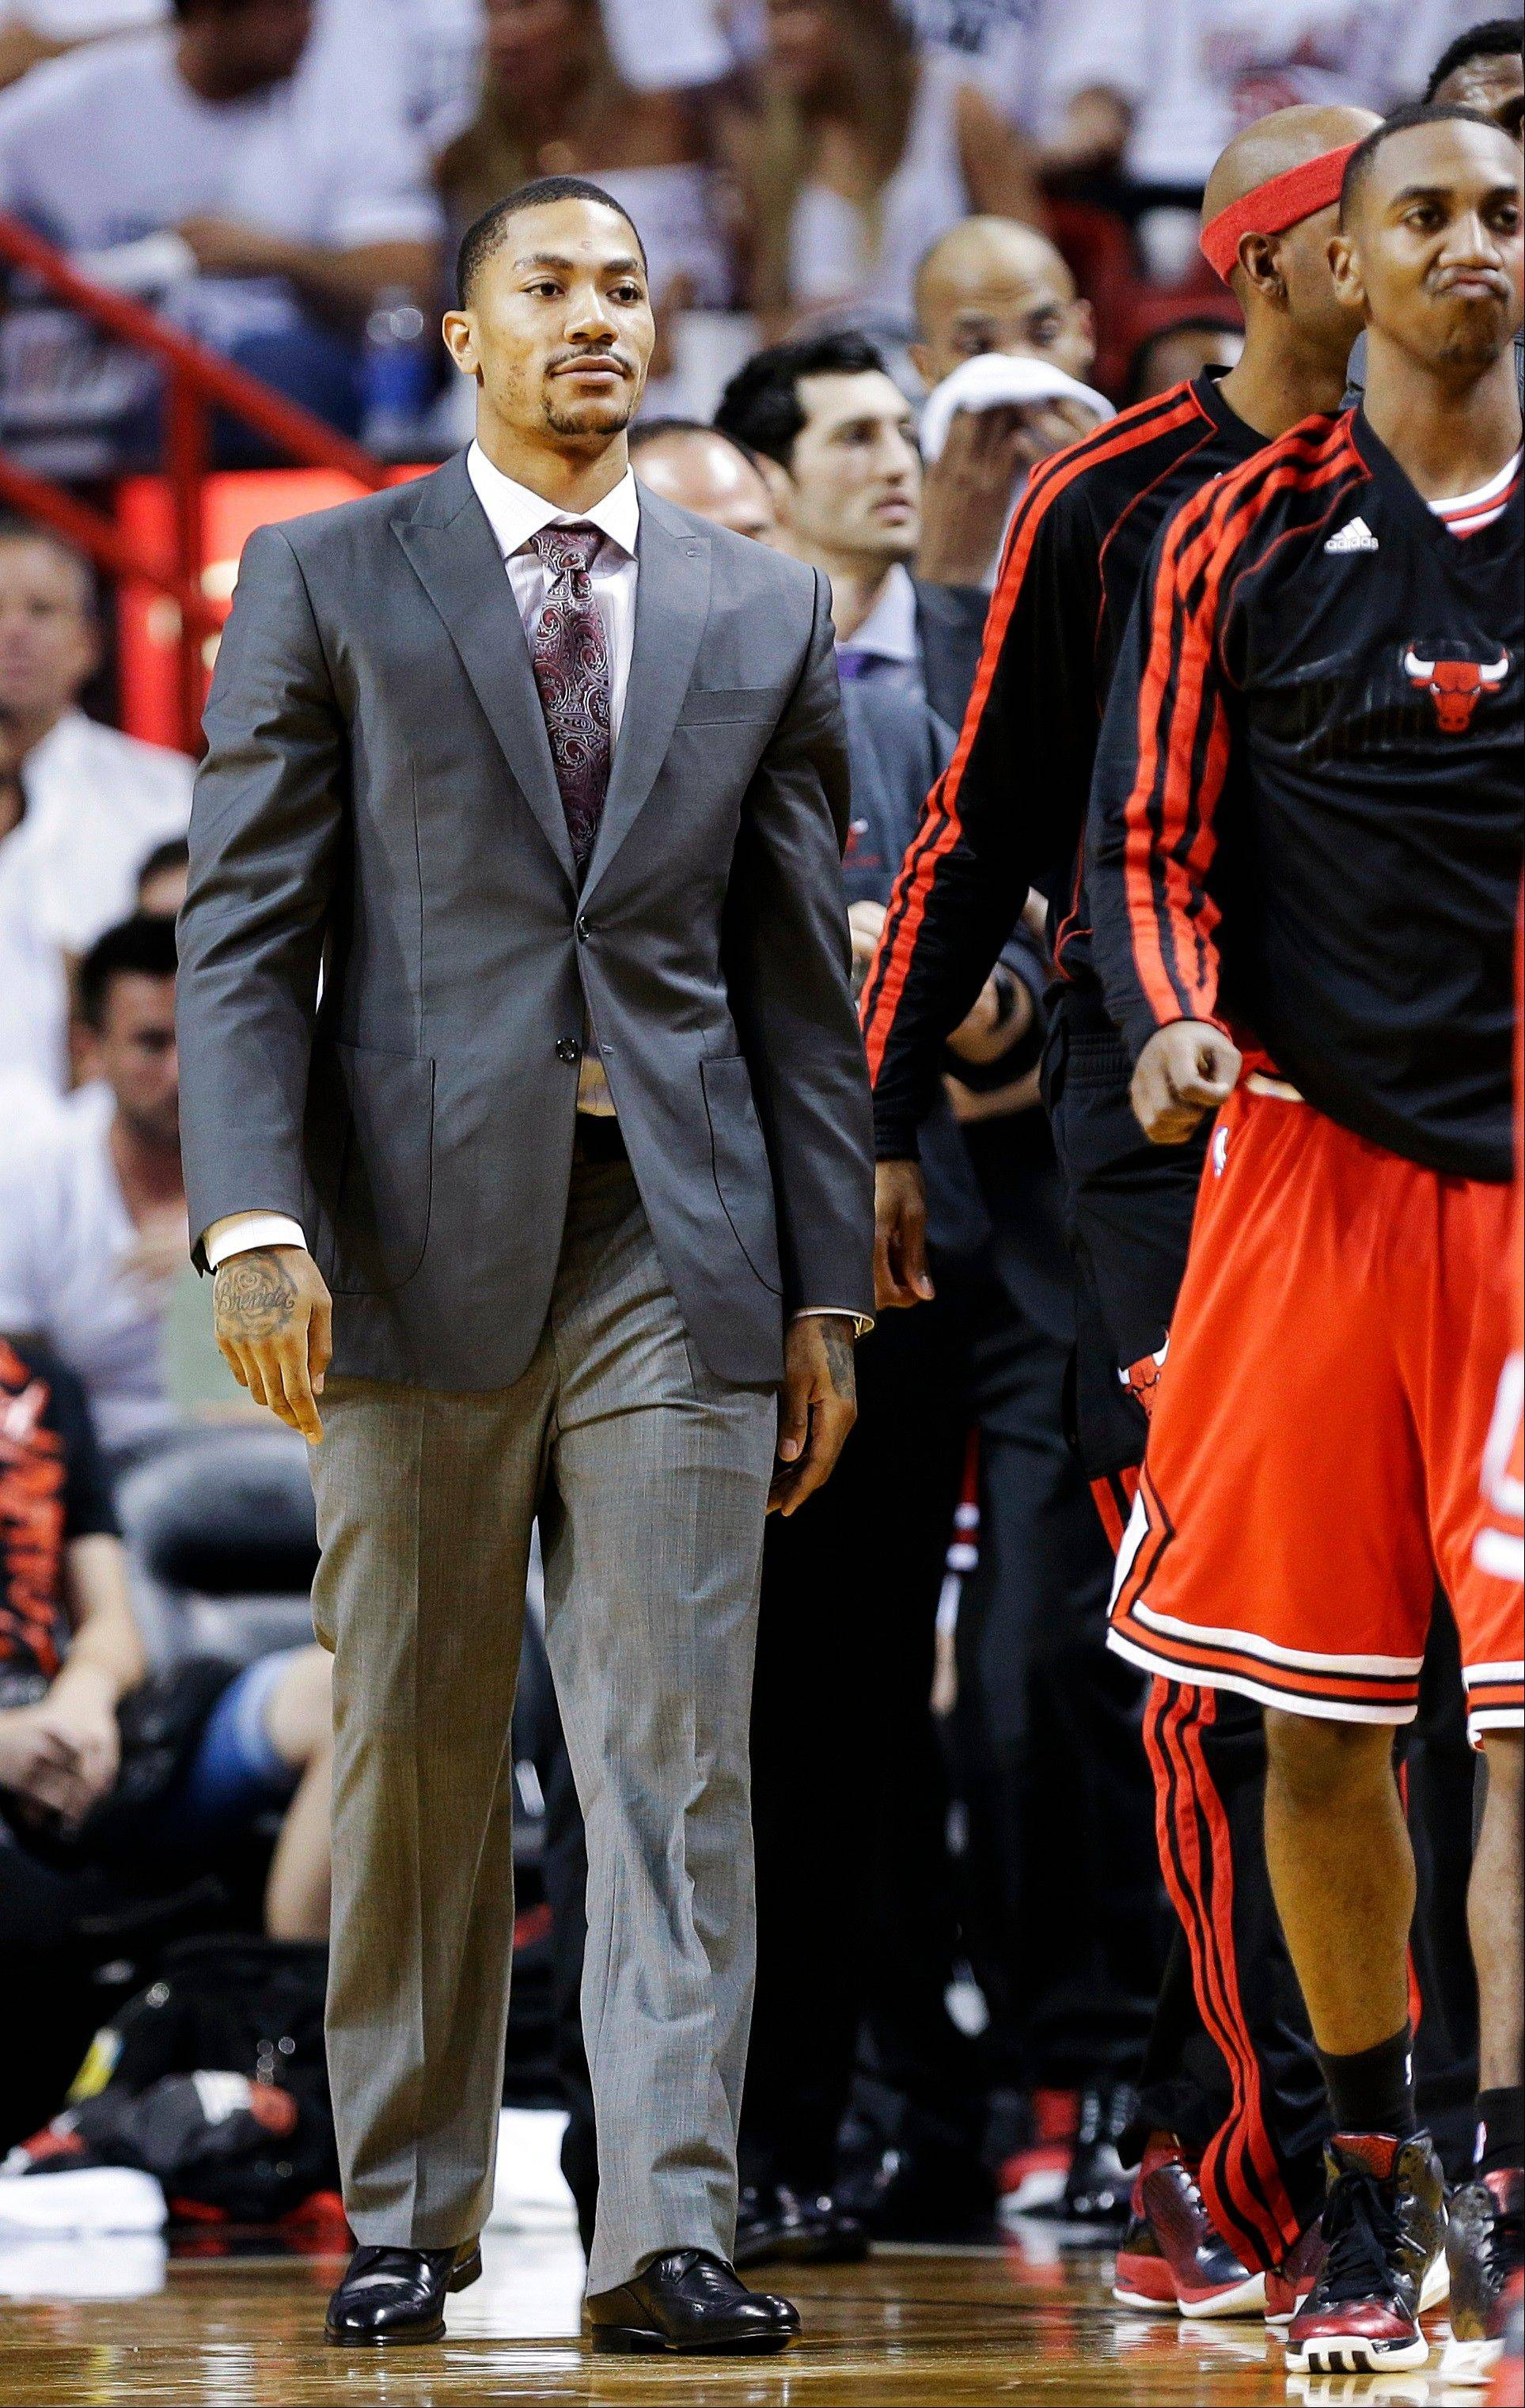 Chicago Bulls guard Derrick Rose walks on the sideline during the first half of Game 1 of the NBA basketball playoff series in the Eastern Conference semifinals against the Miami Heat, Monday, May 6, 2013 in Miami. Rose has not played while recovering from reconstructive knee surgery.